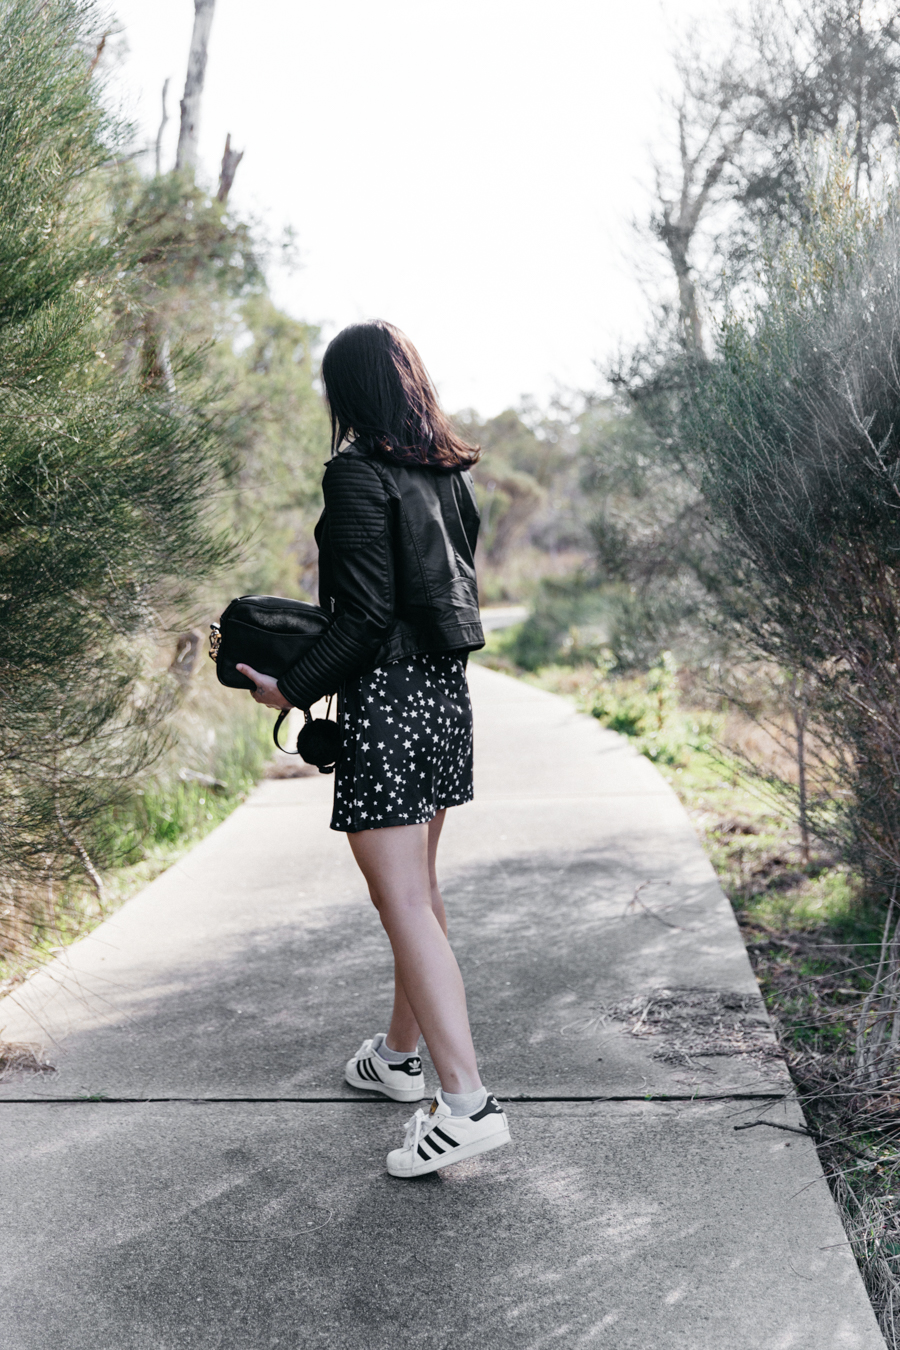 Leather jacket with skater dress outfit.